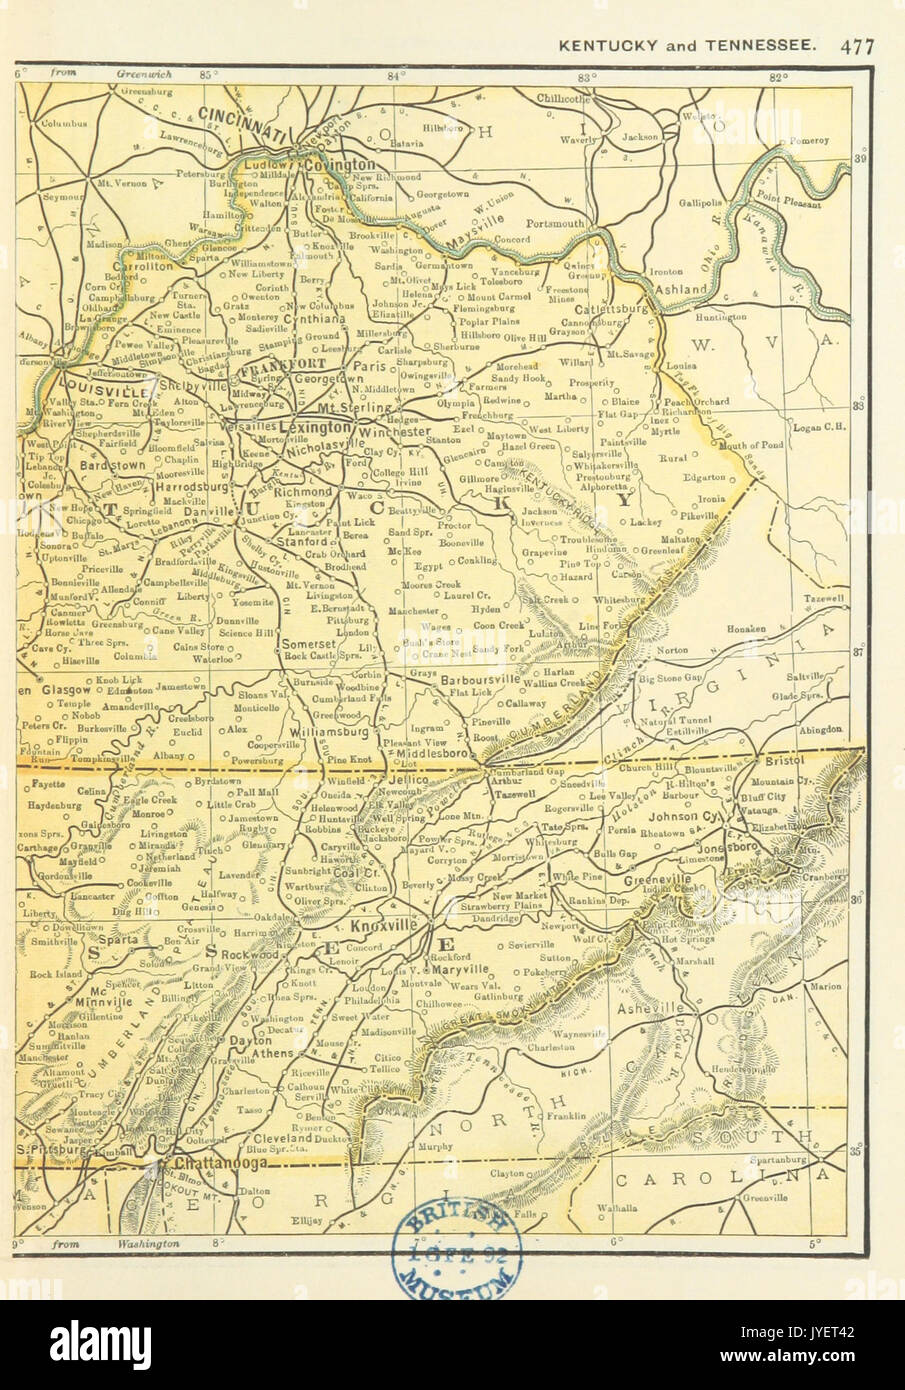 Us Maps 1891 P479 Map Of Kentucky And Tennessee R Stock Photo